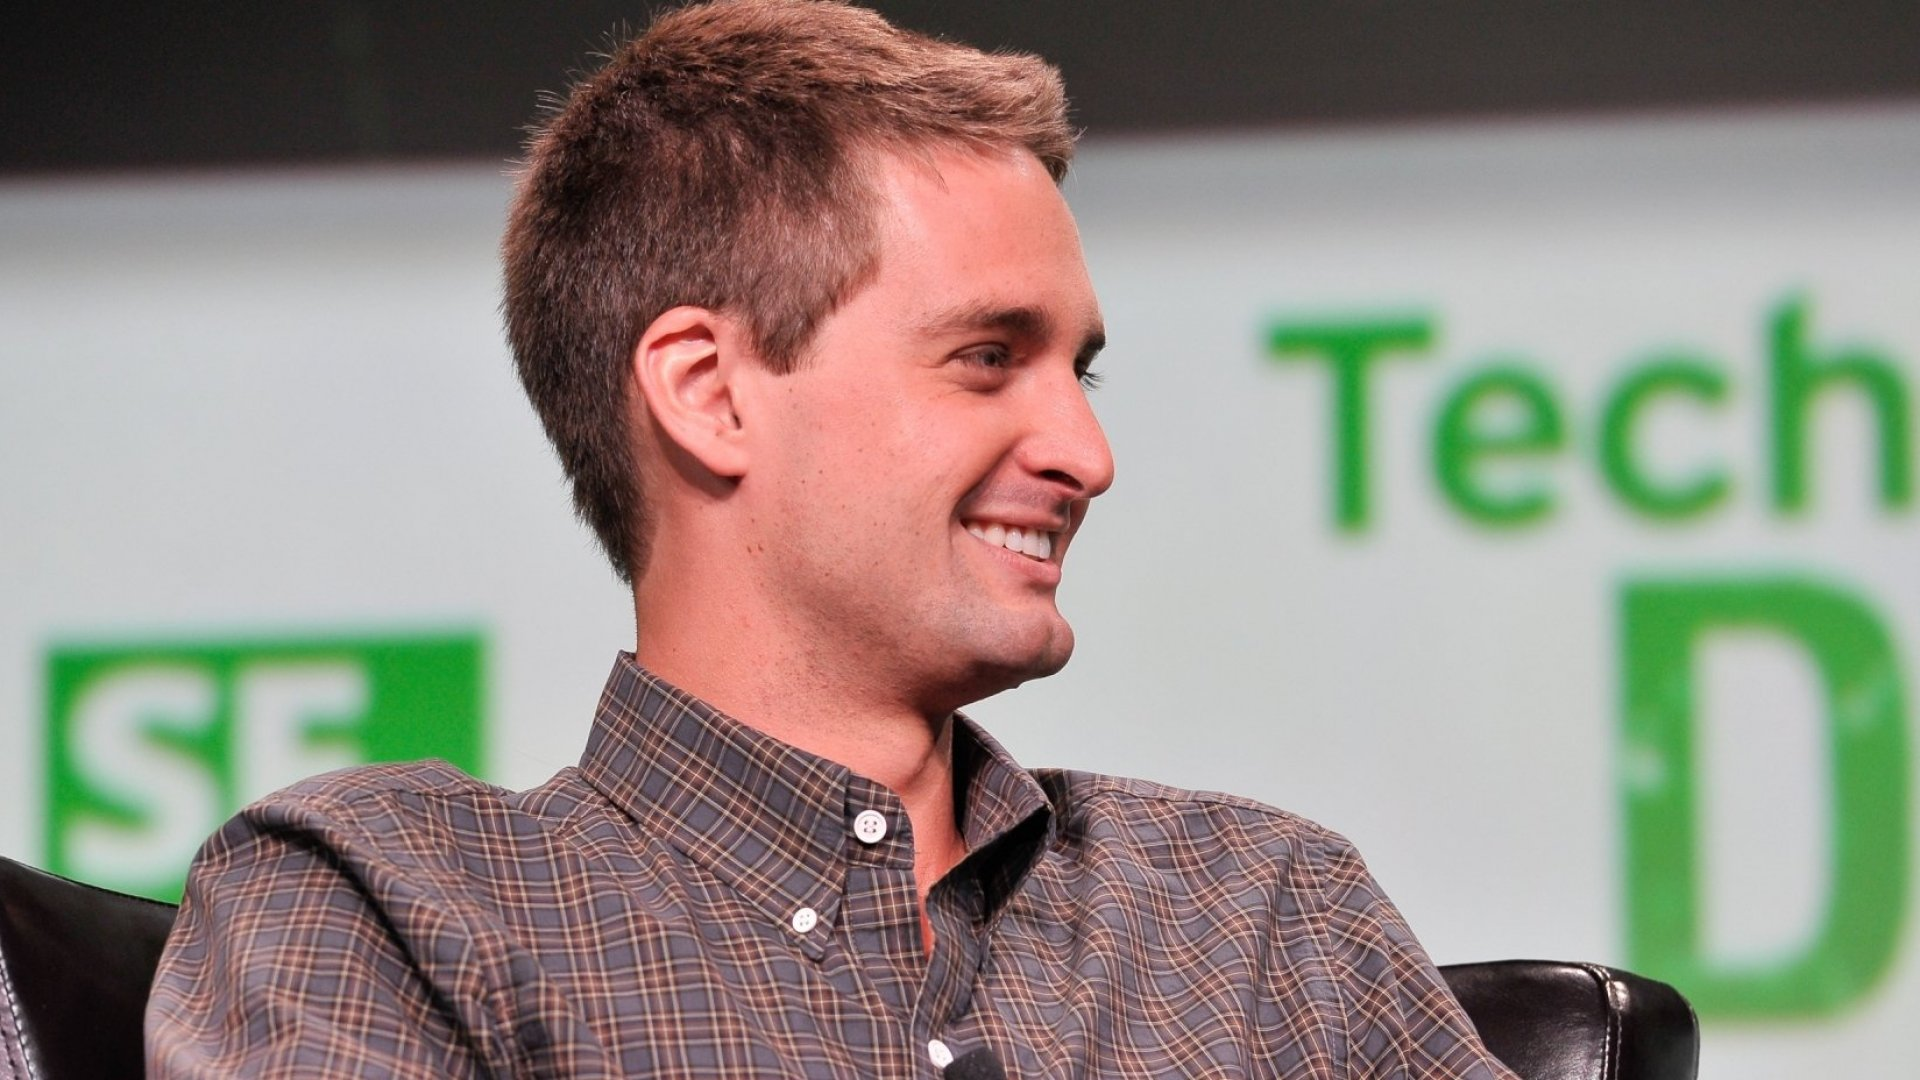 Snapchat Buys Bitstrips, a Maker of Personalized Emojis